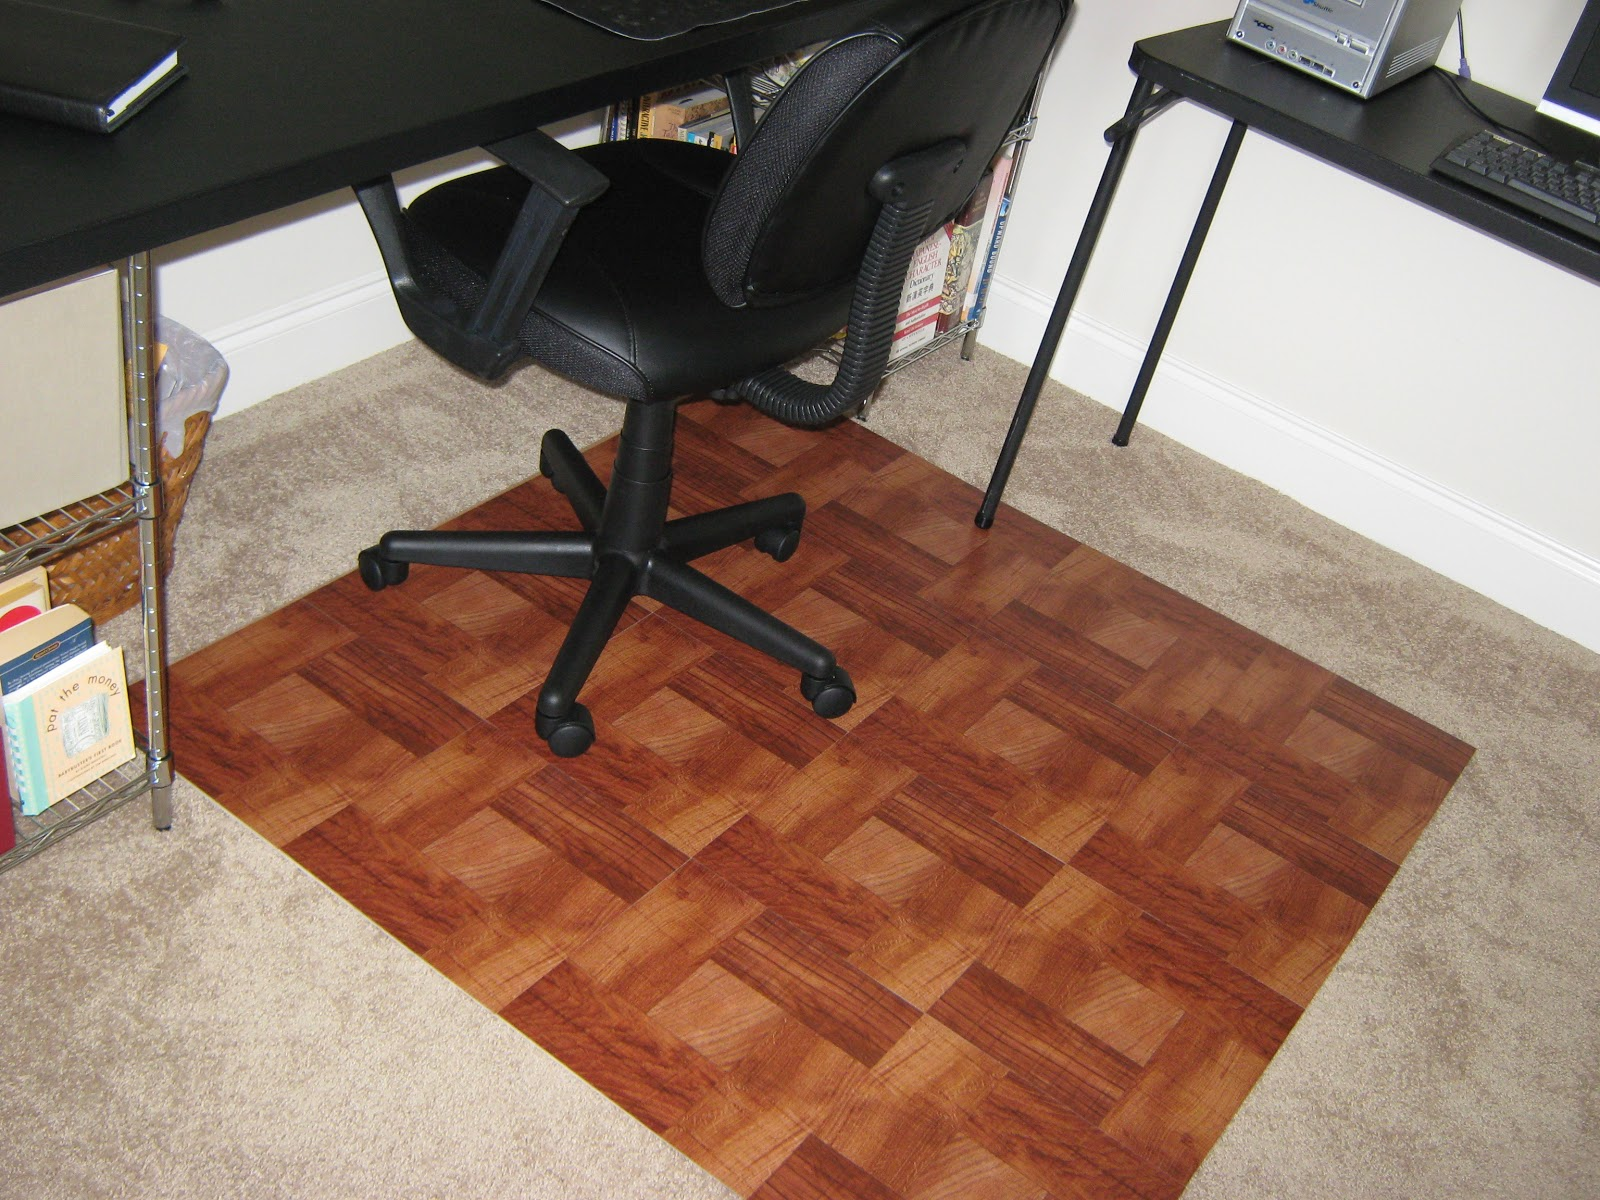 Office Chair Carpet Protector Create A Better Overview Of Your Ambience By Using Chair